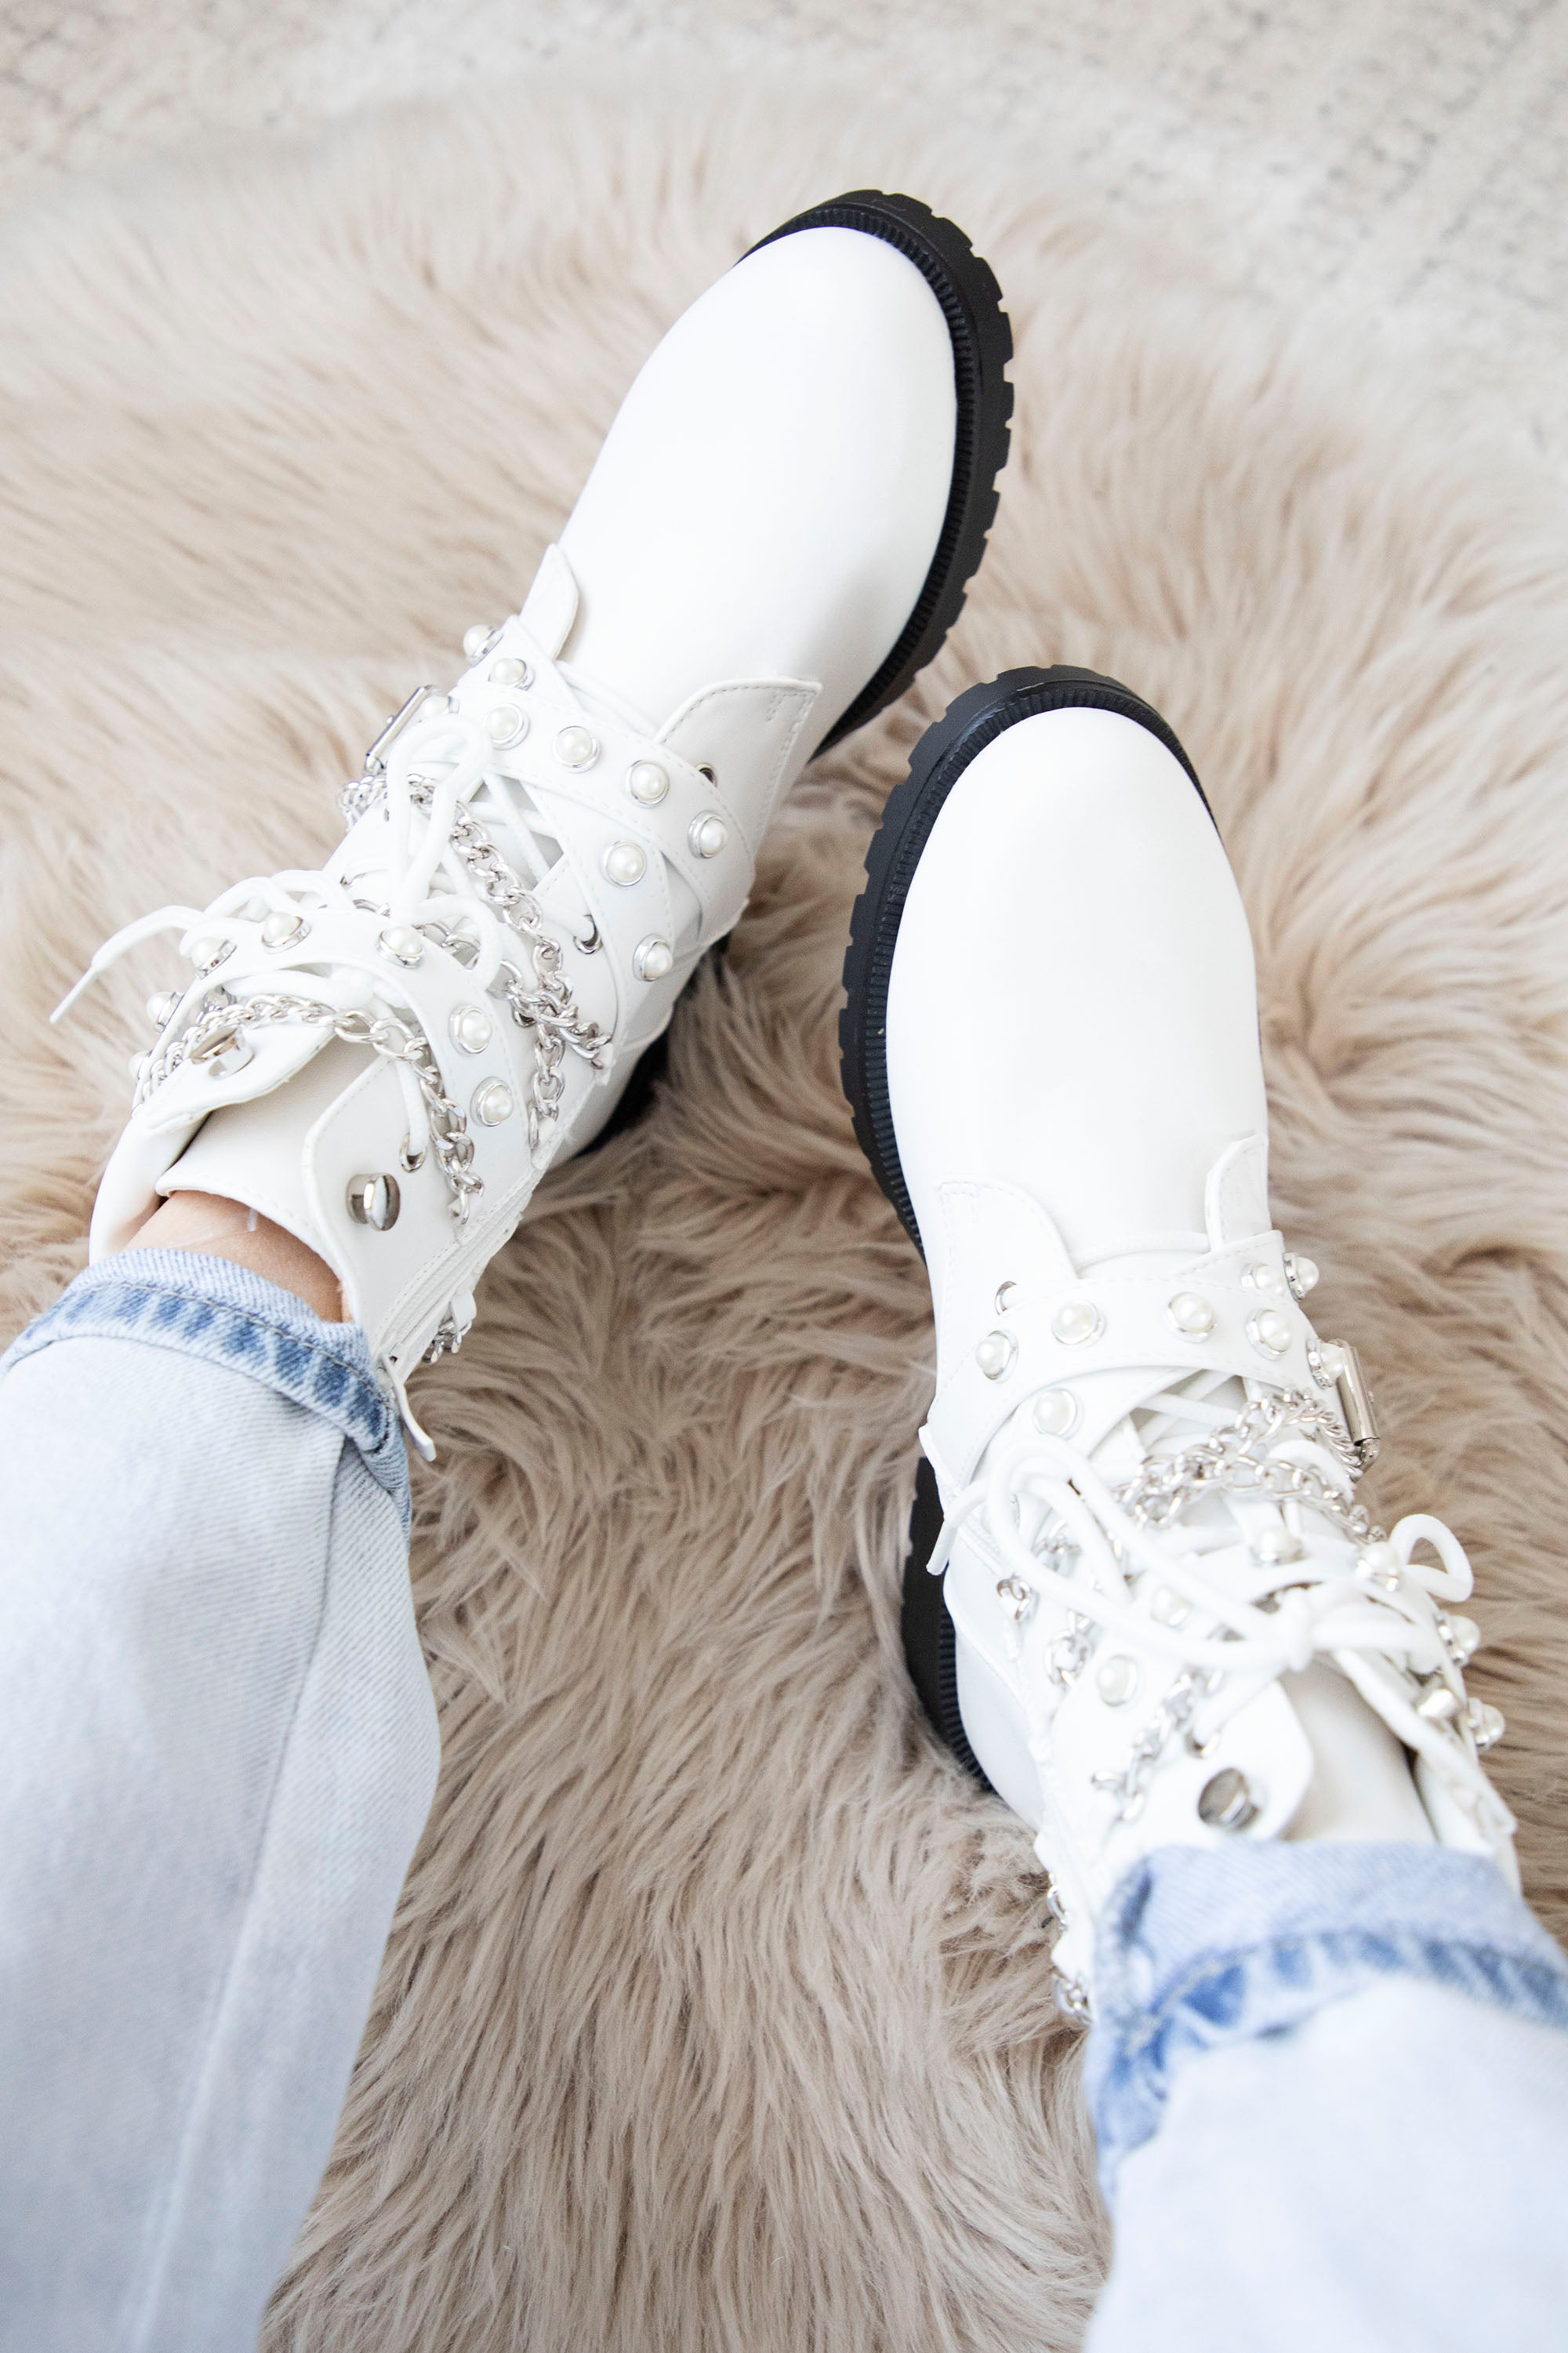 Just Stay Cool White - Boots